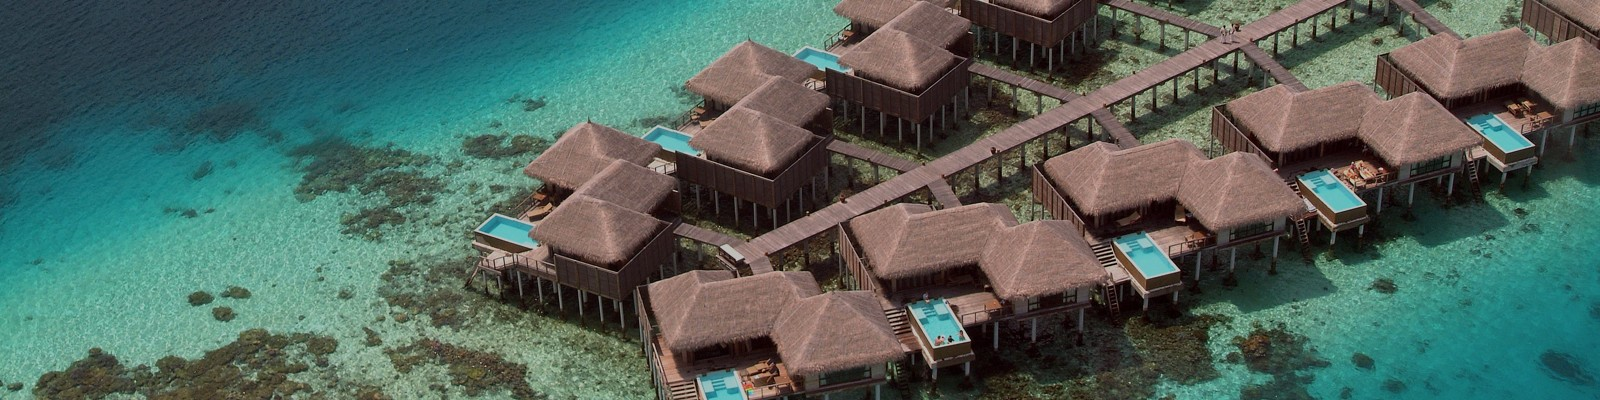 maldives honeymoon packages - coco bodu hithi header hmd